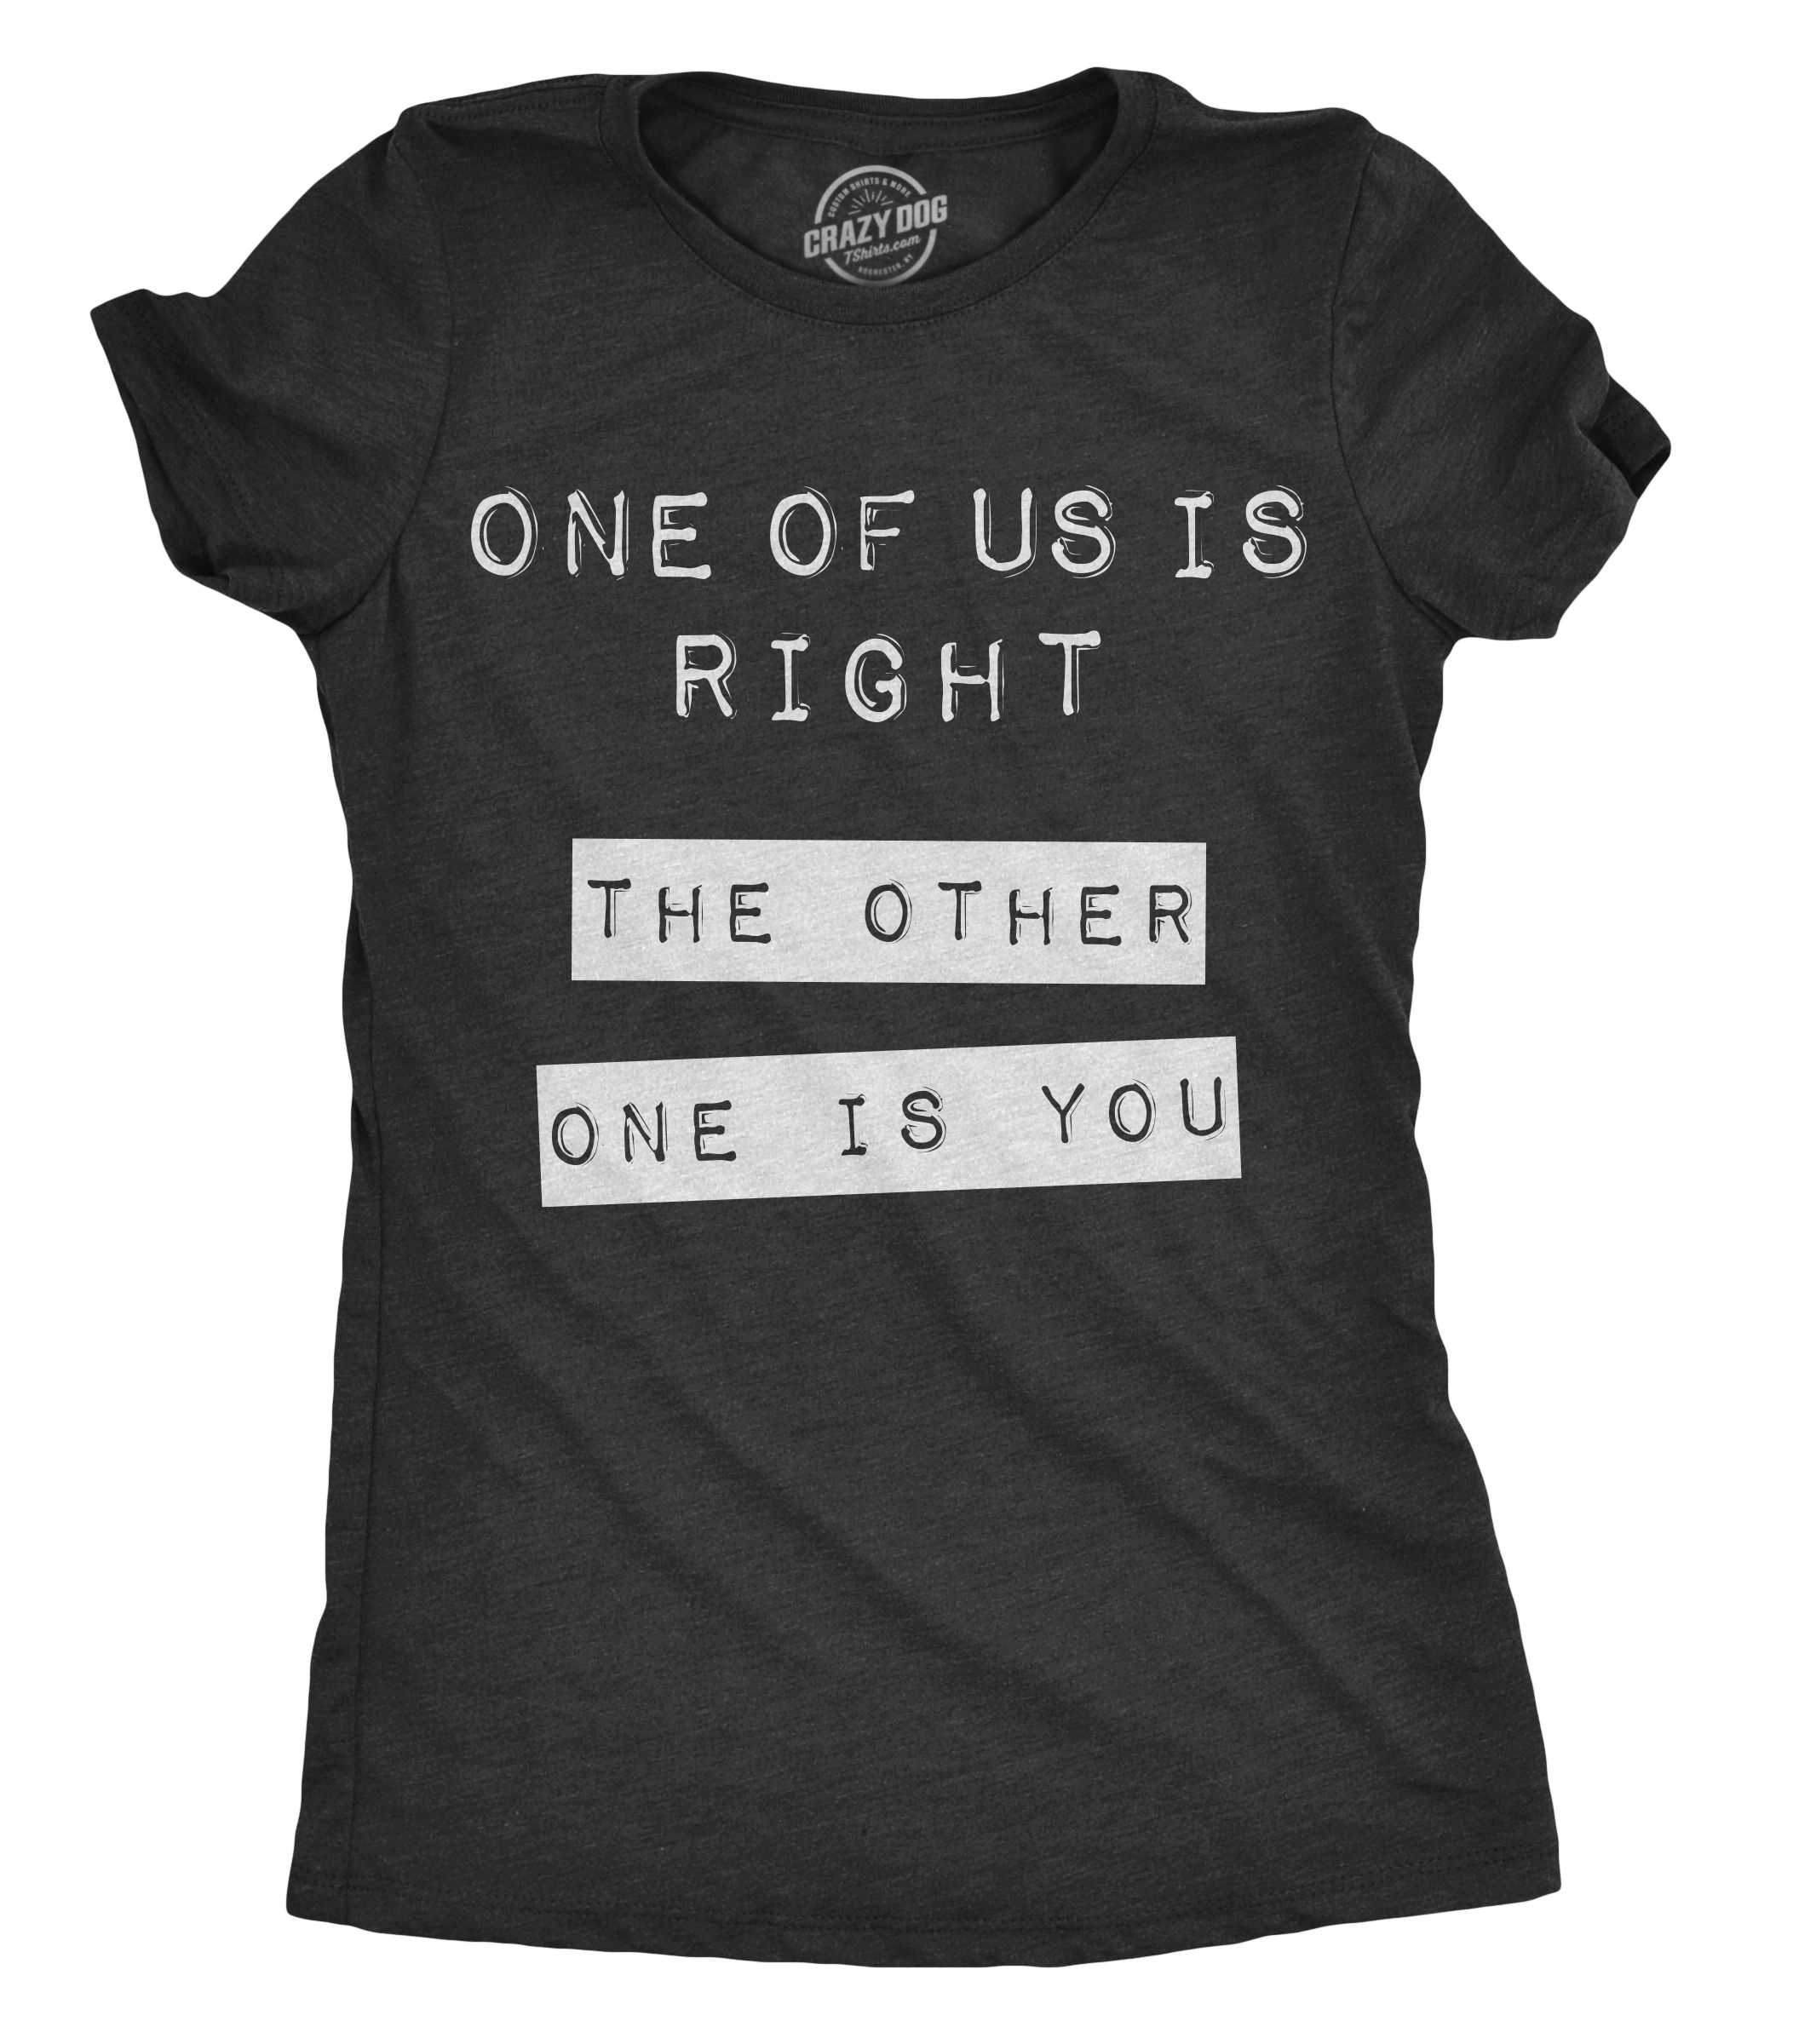 Womens One Of Us Is Right The Other One Is You Tshirt Funny Tee For Ladies